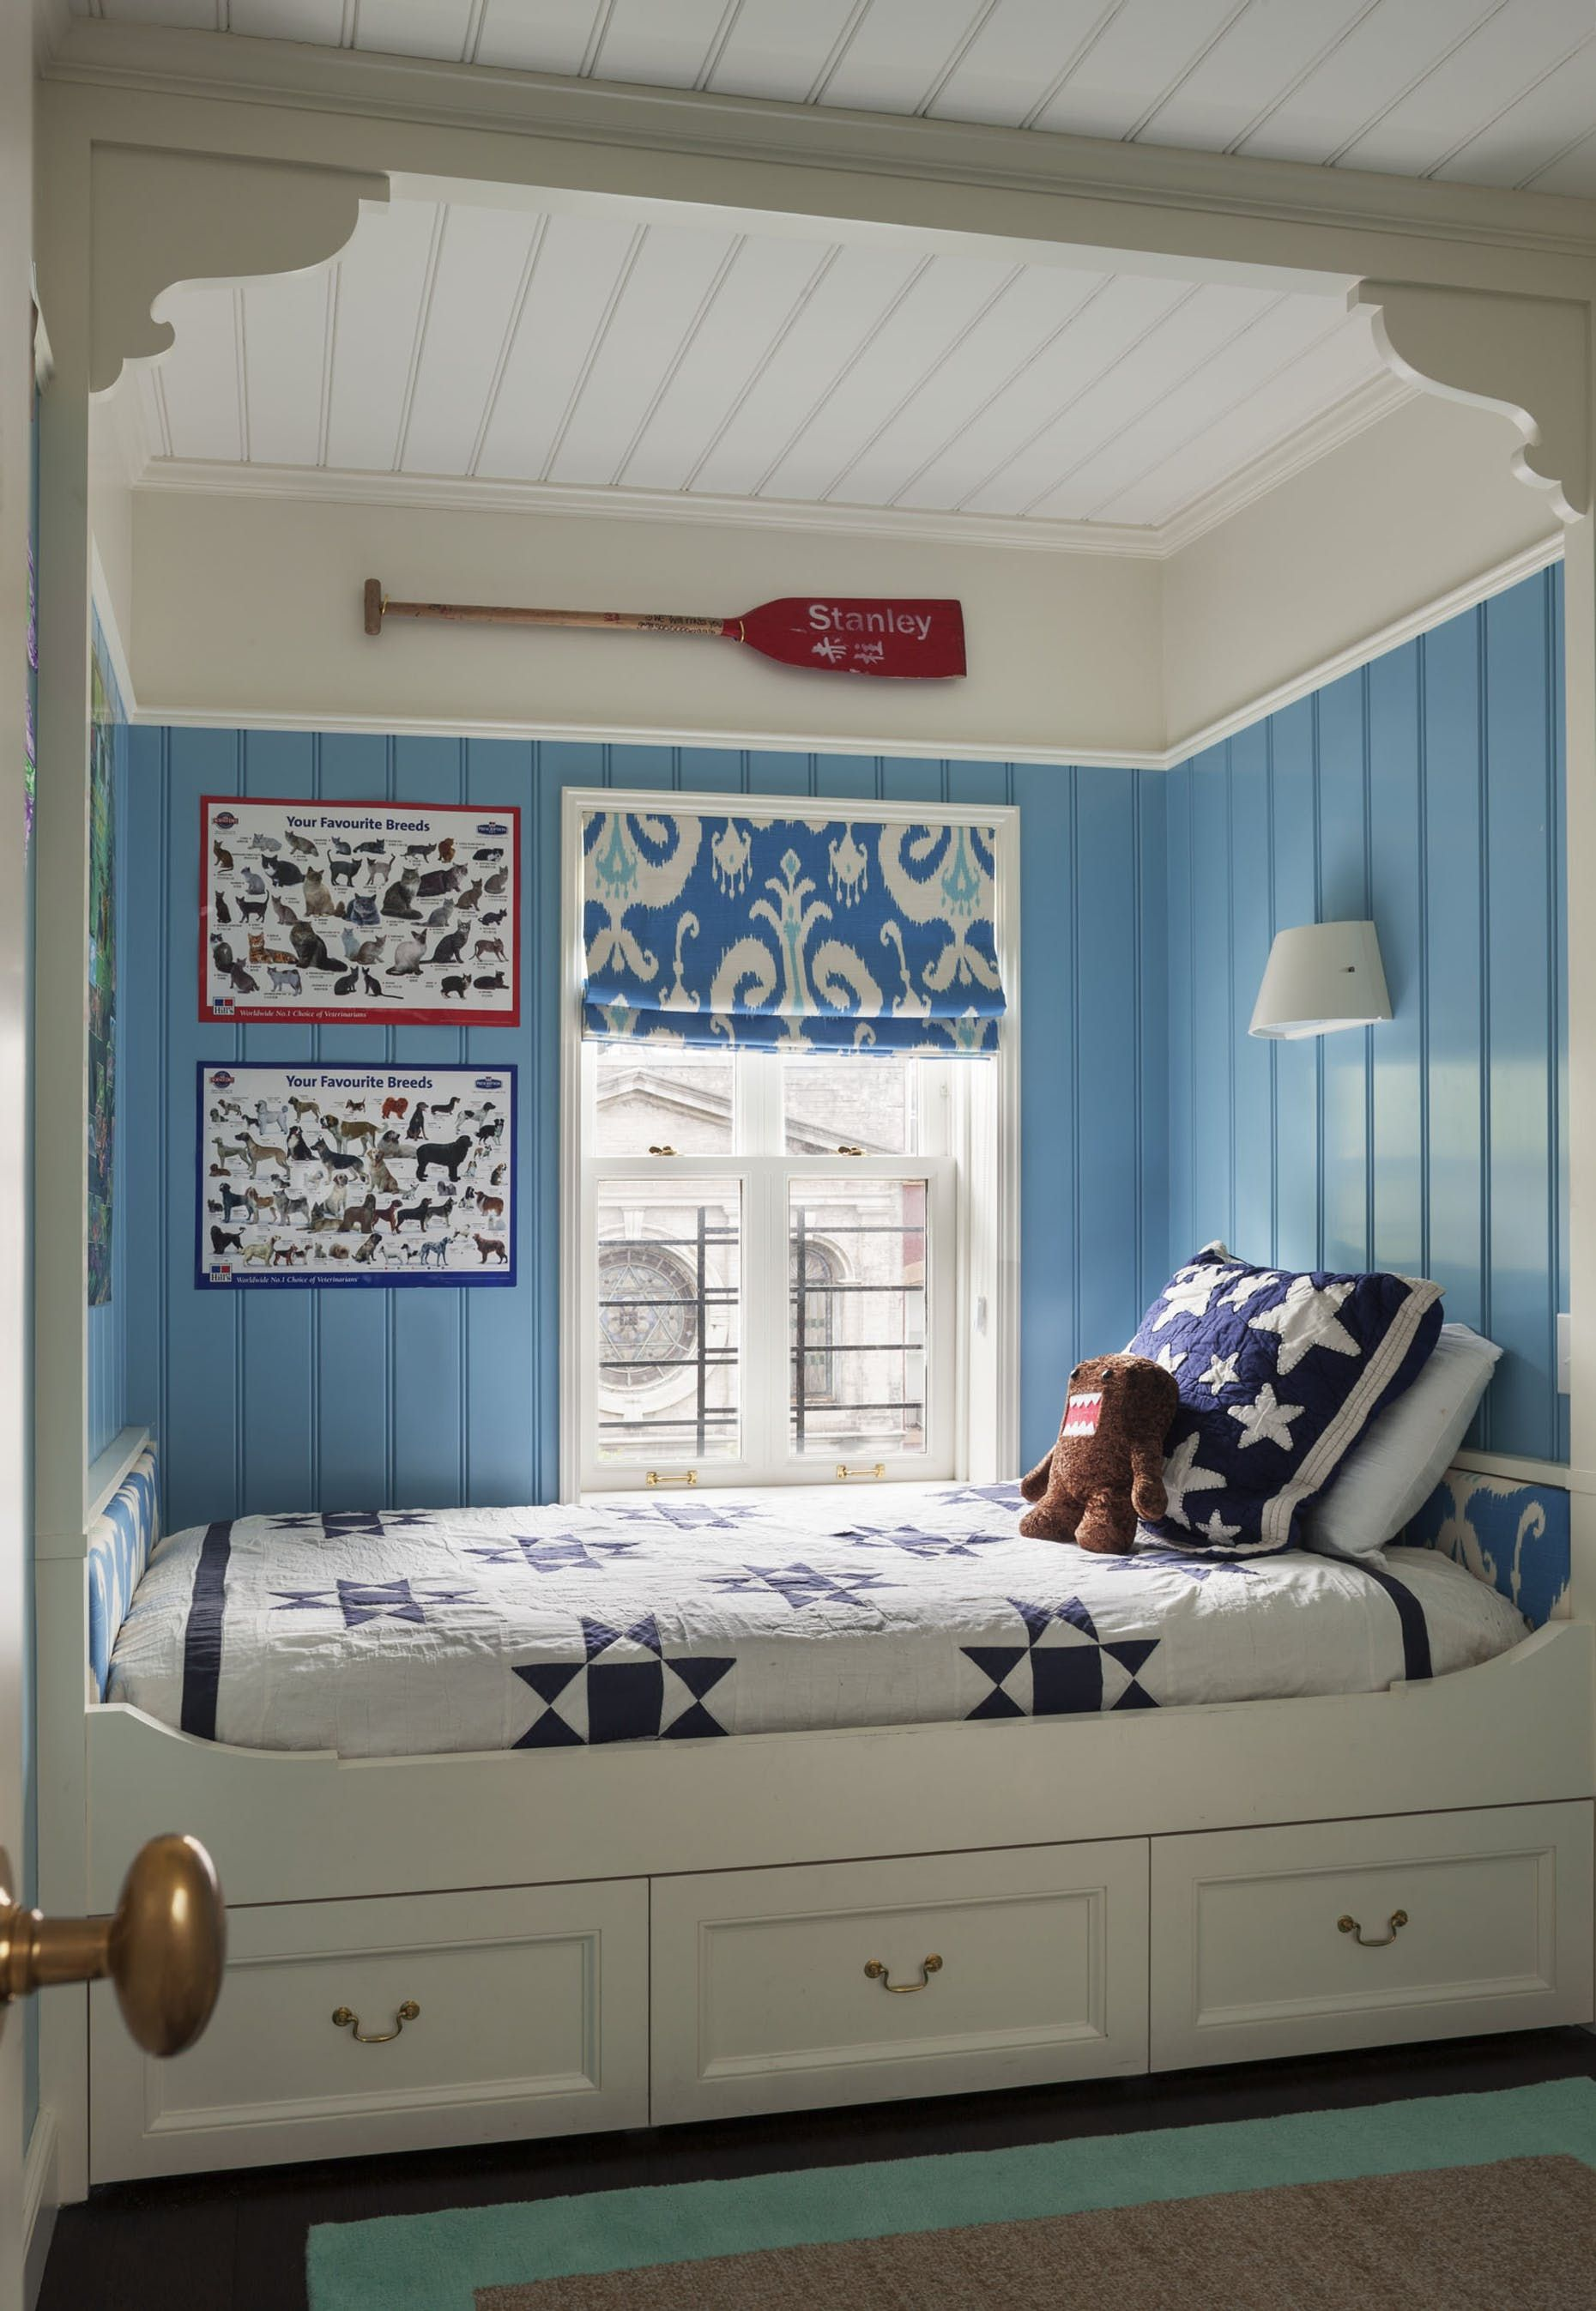 Fairfax sammons portfolio interiors american country beachcoastal eclectic neoclassical traditional transitional bedroom childrens room.jpg?ixlib=rails 1.1